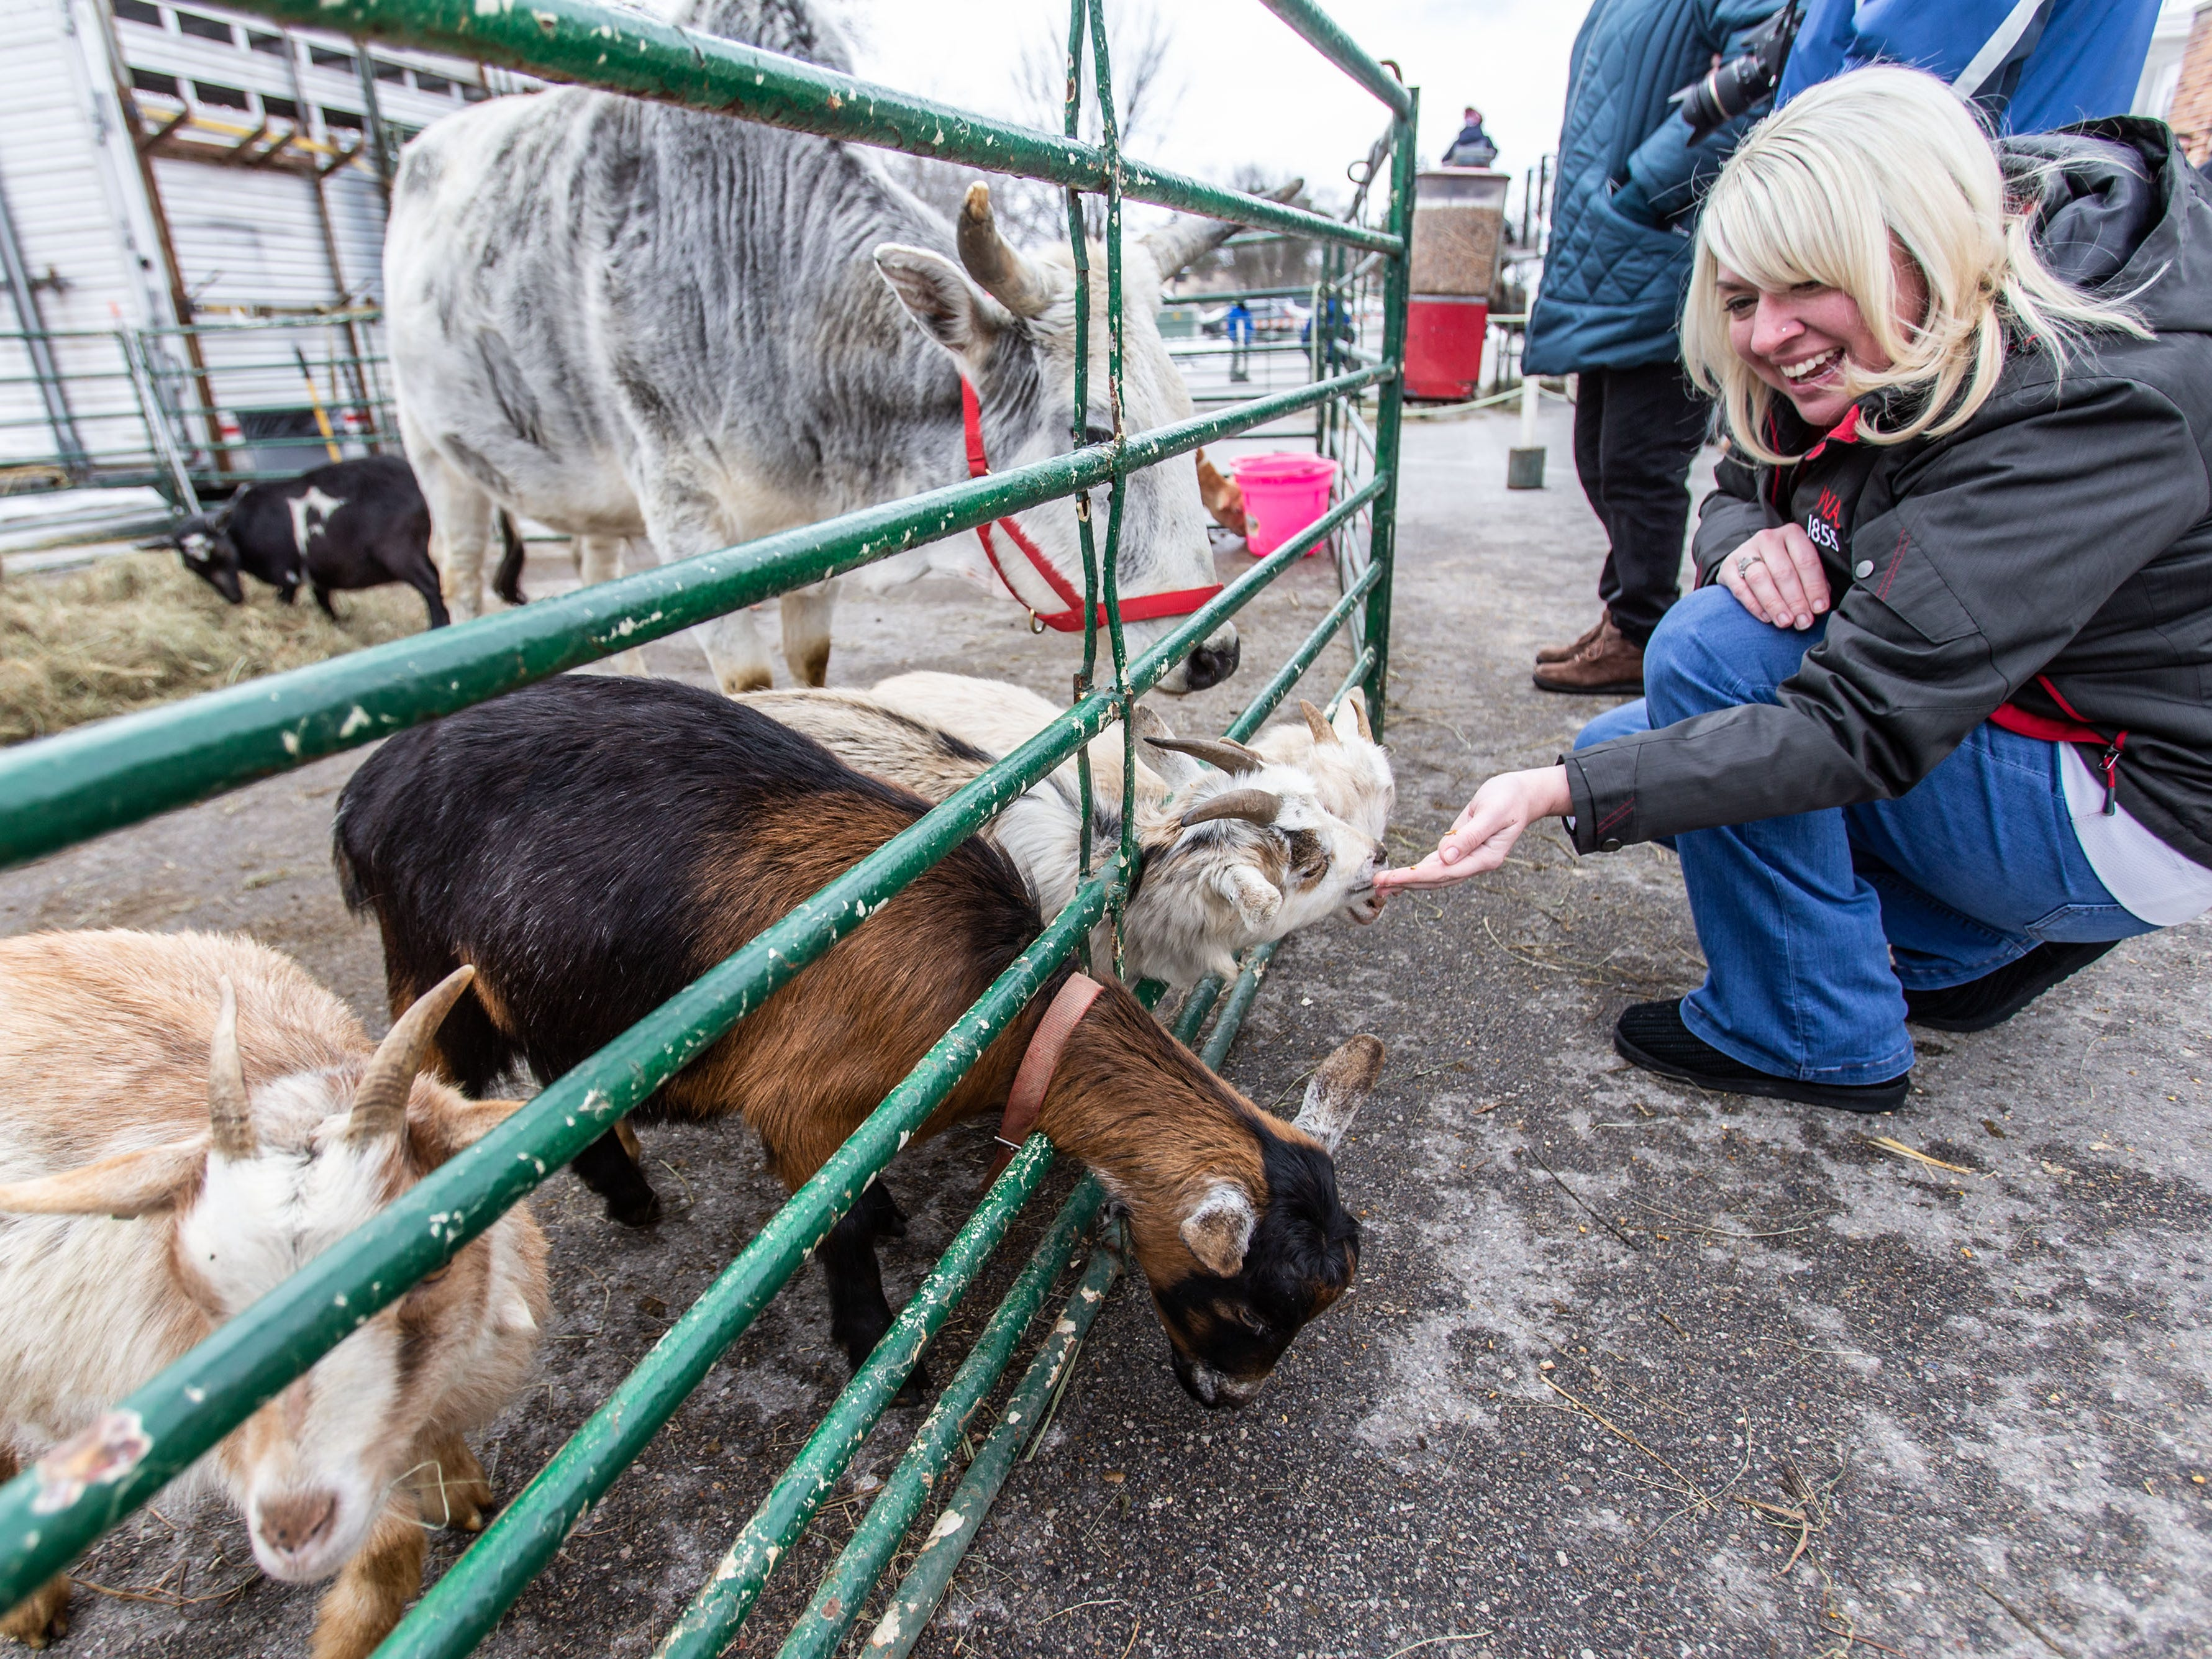 Andrea Shoop of Saukville makes some new friends at the petting zoo during Cedarburg's Winter Festival on Saturday, Feb. 16, 2019. The annual event features a grand parade, bed racing, ice carving, camel rides, a petting zoo, food, games and more.